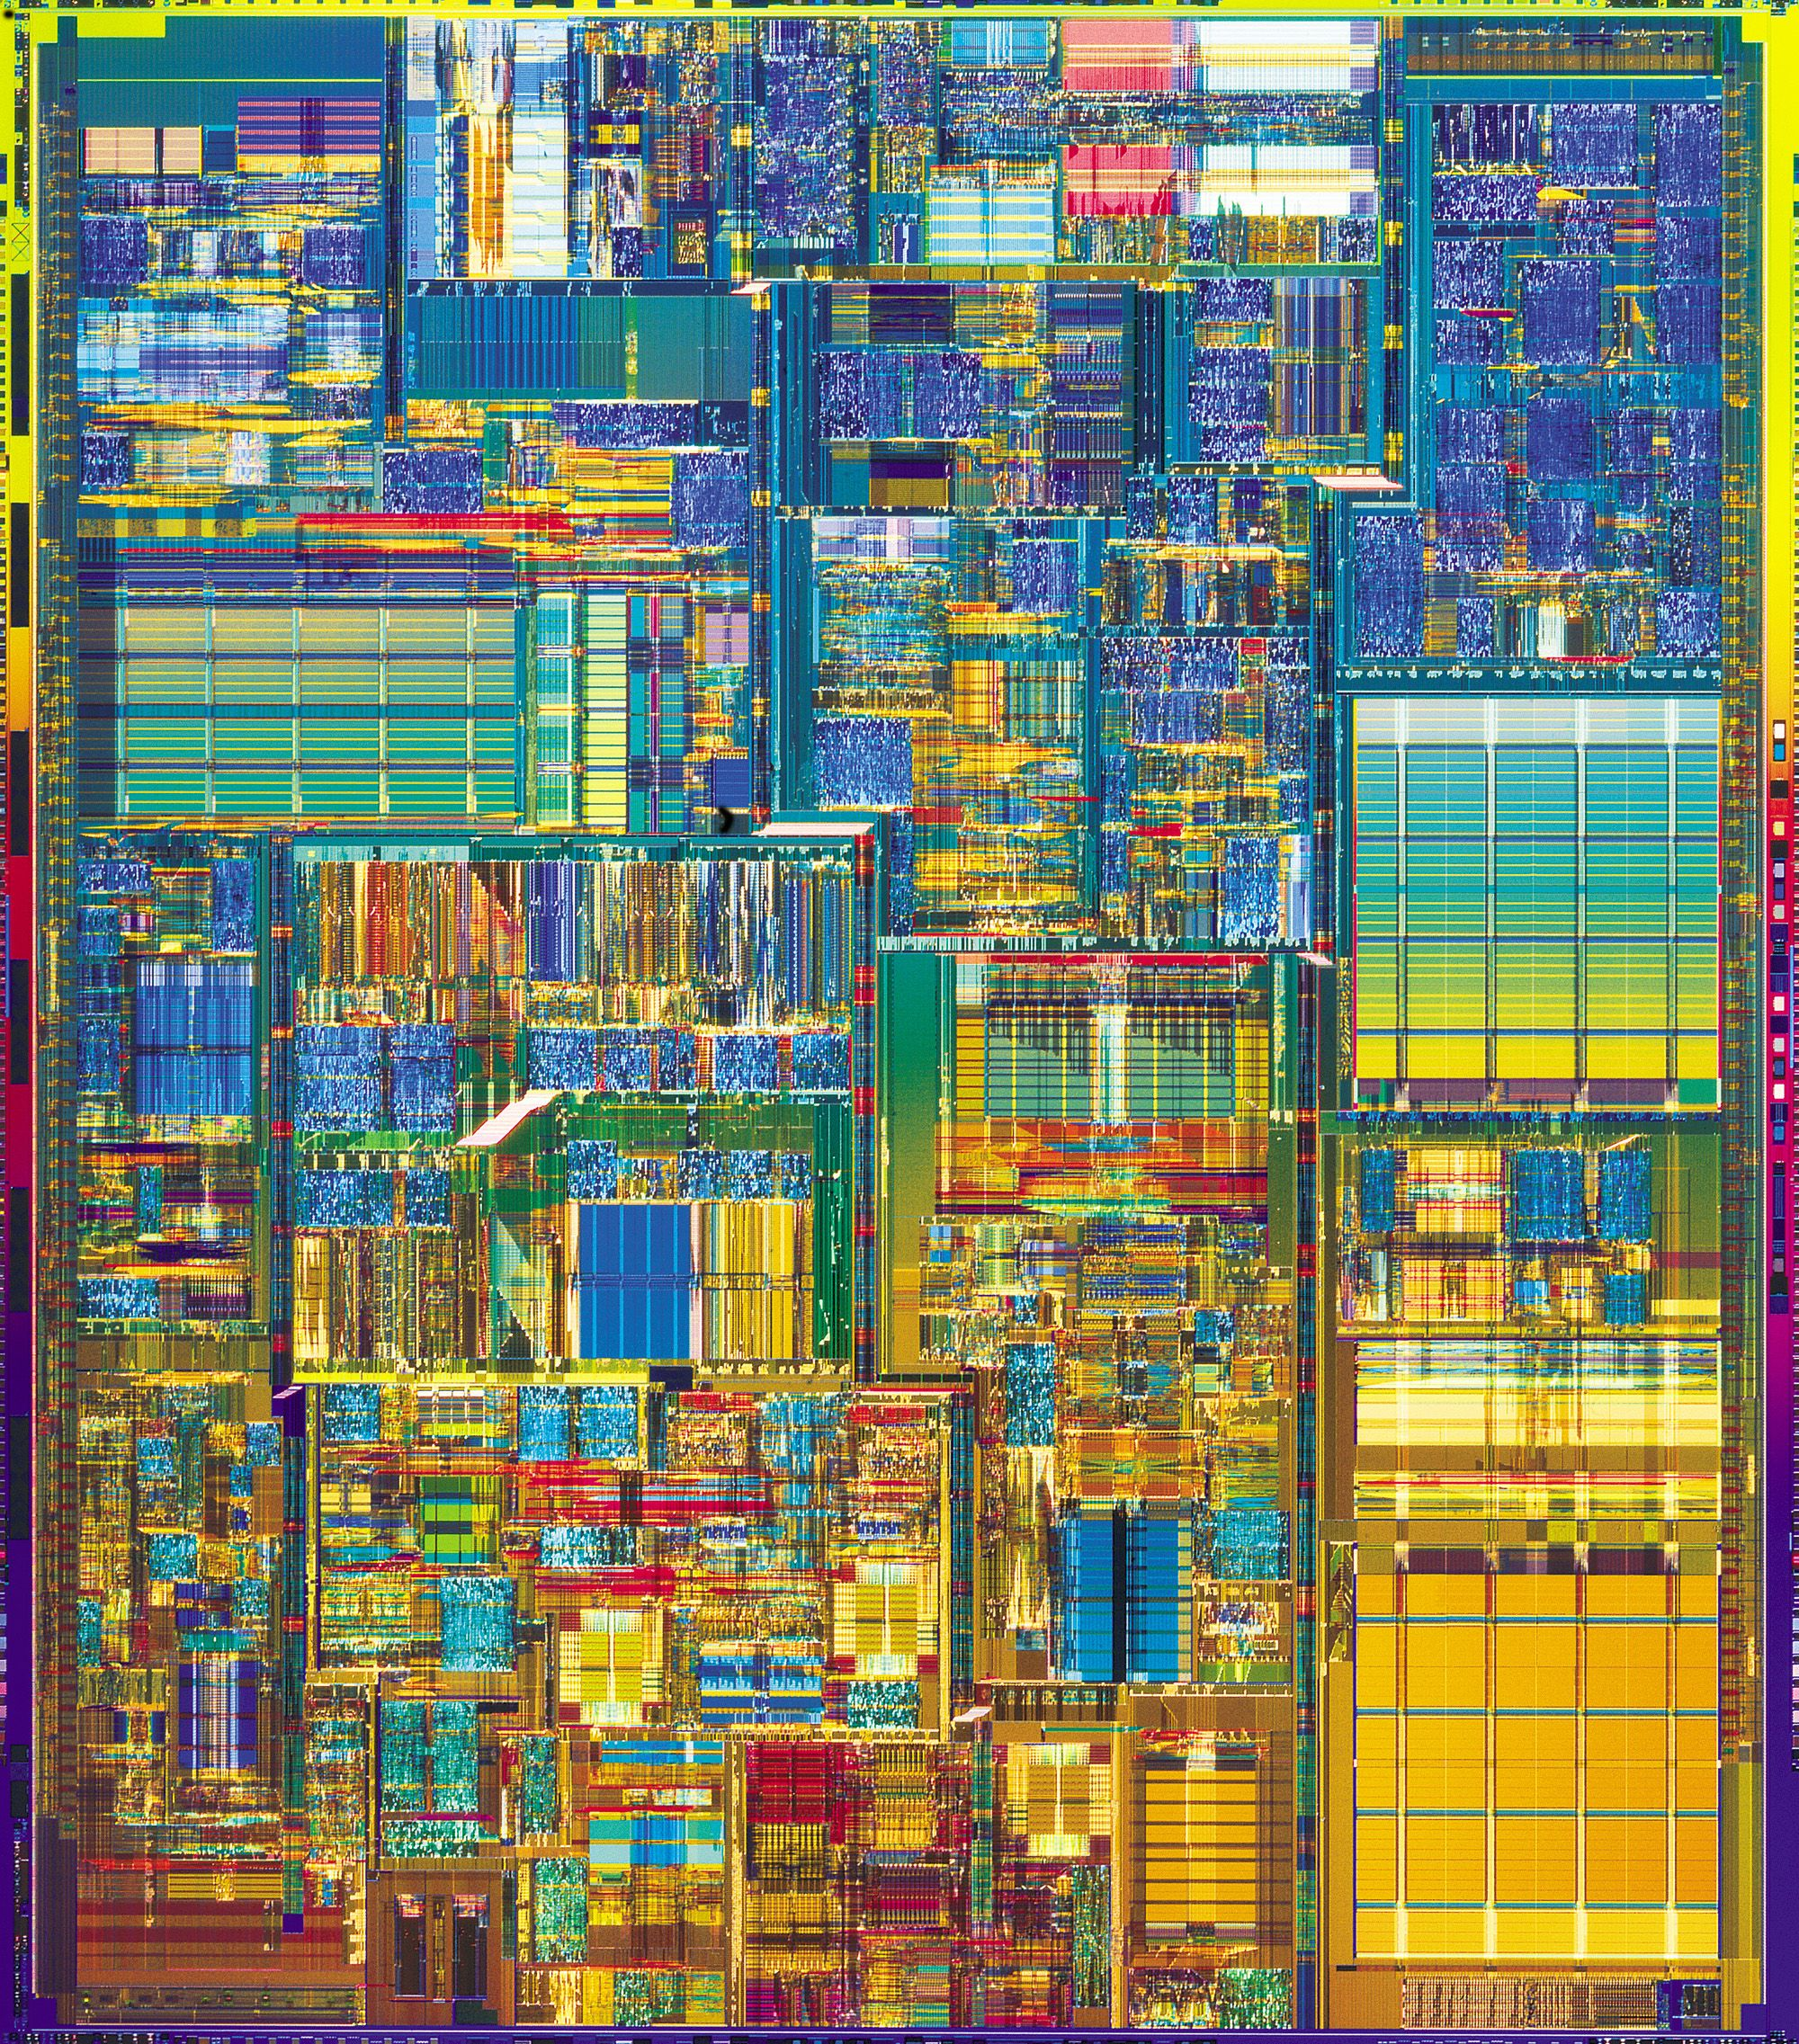 Pentium 4 Circuit Diagram Wiring Library The Motherboard Schematic For Motion Le1600 Tablet Pc Laptop Notebook